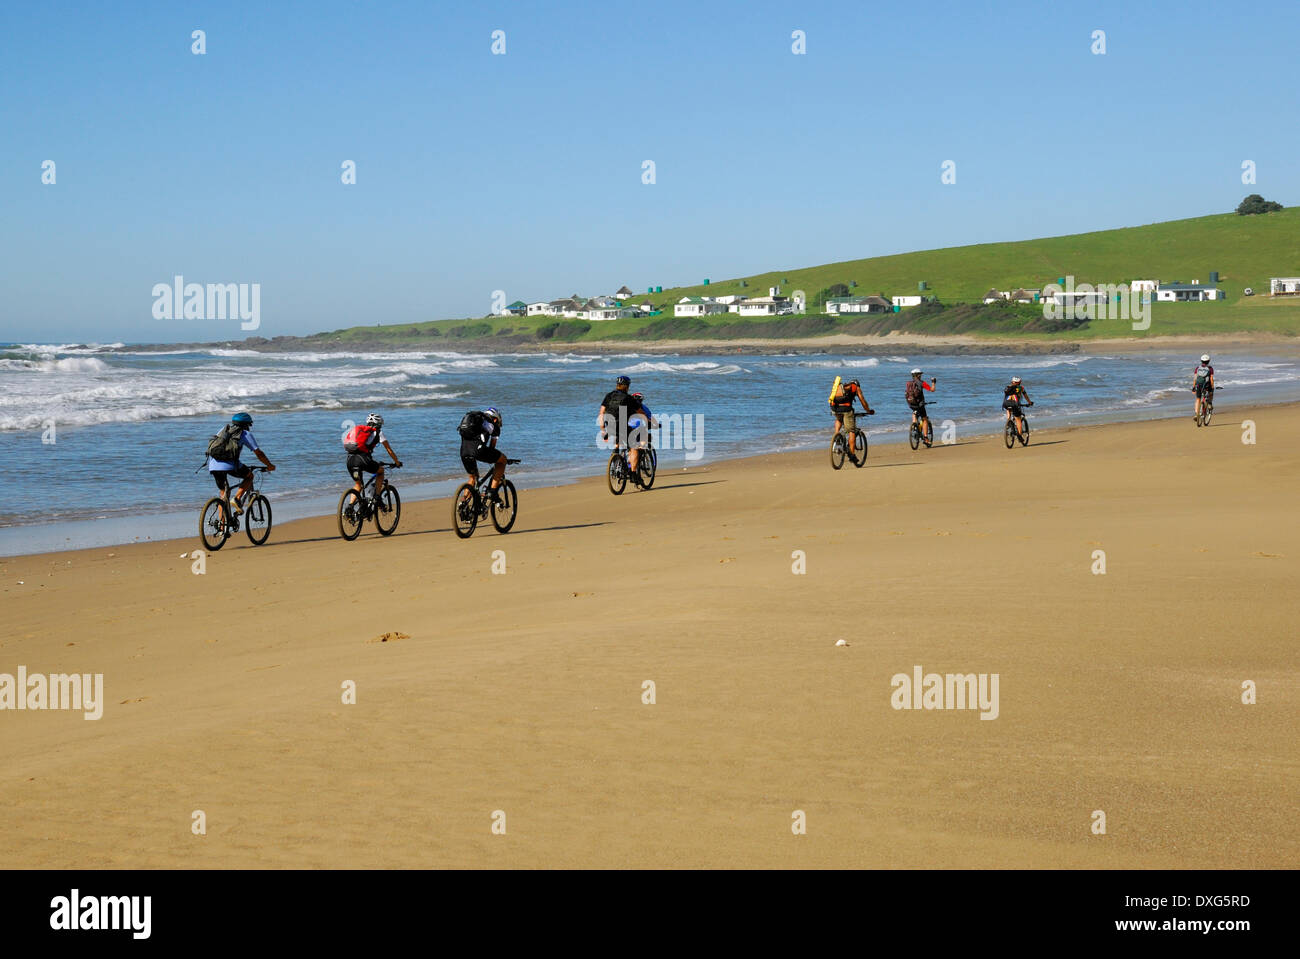 Cycling the Wild Coast at Breezy Point, Transkei, Eastern Cape - Stock Image